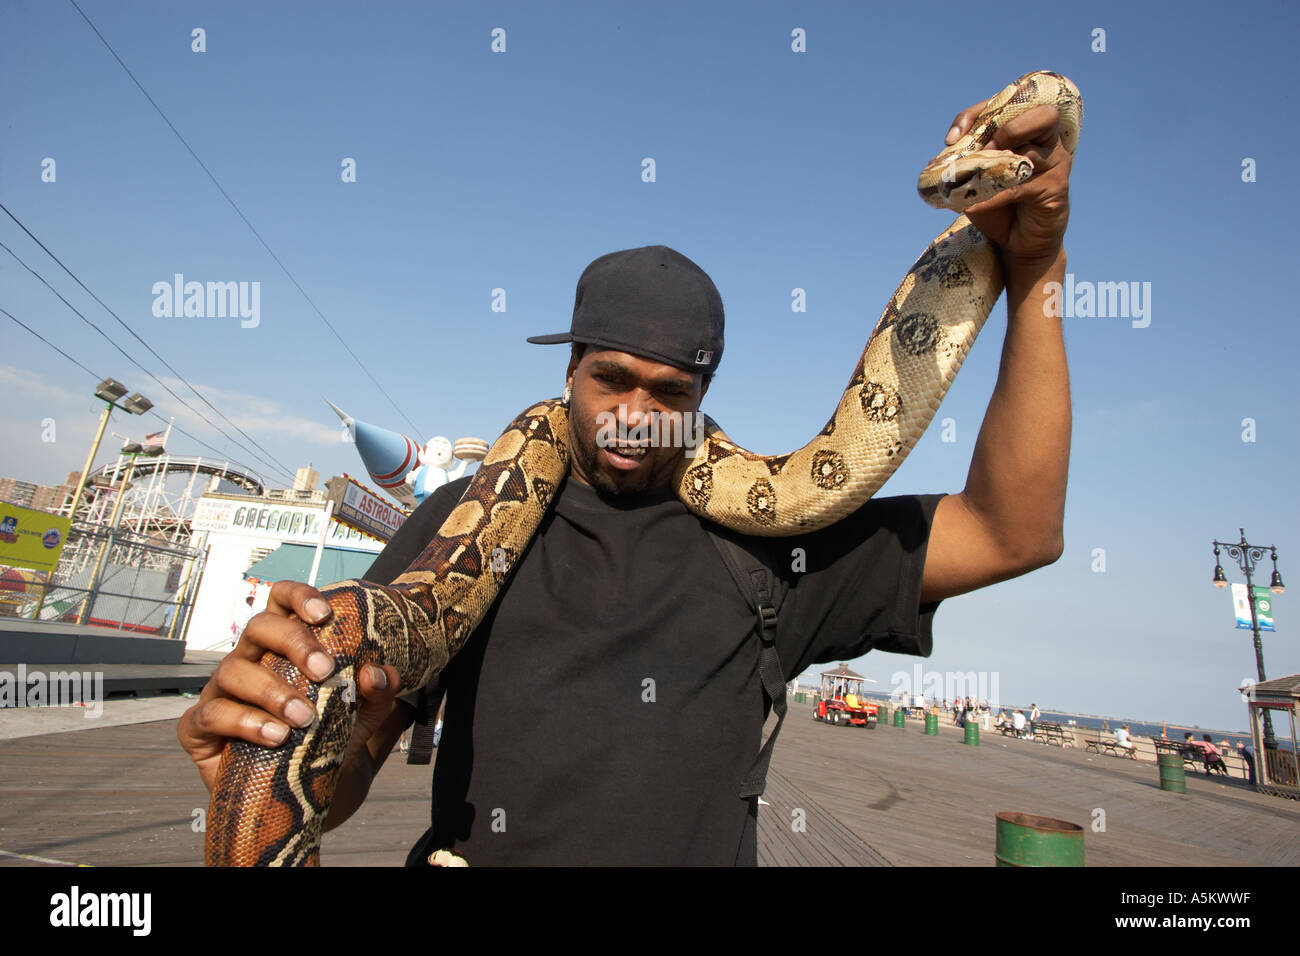 Man with pet python on the boardwalk at Coney Island Stock Photo